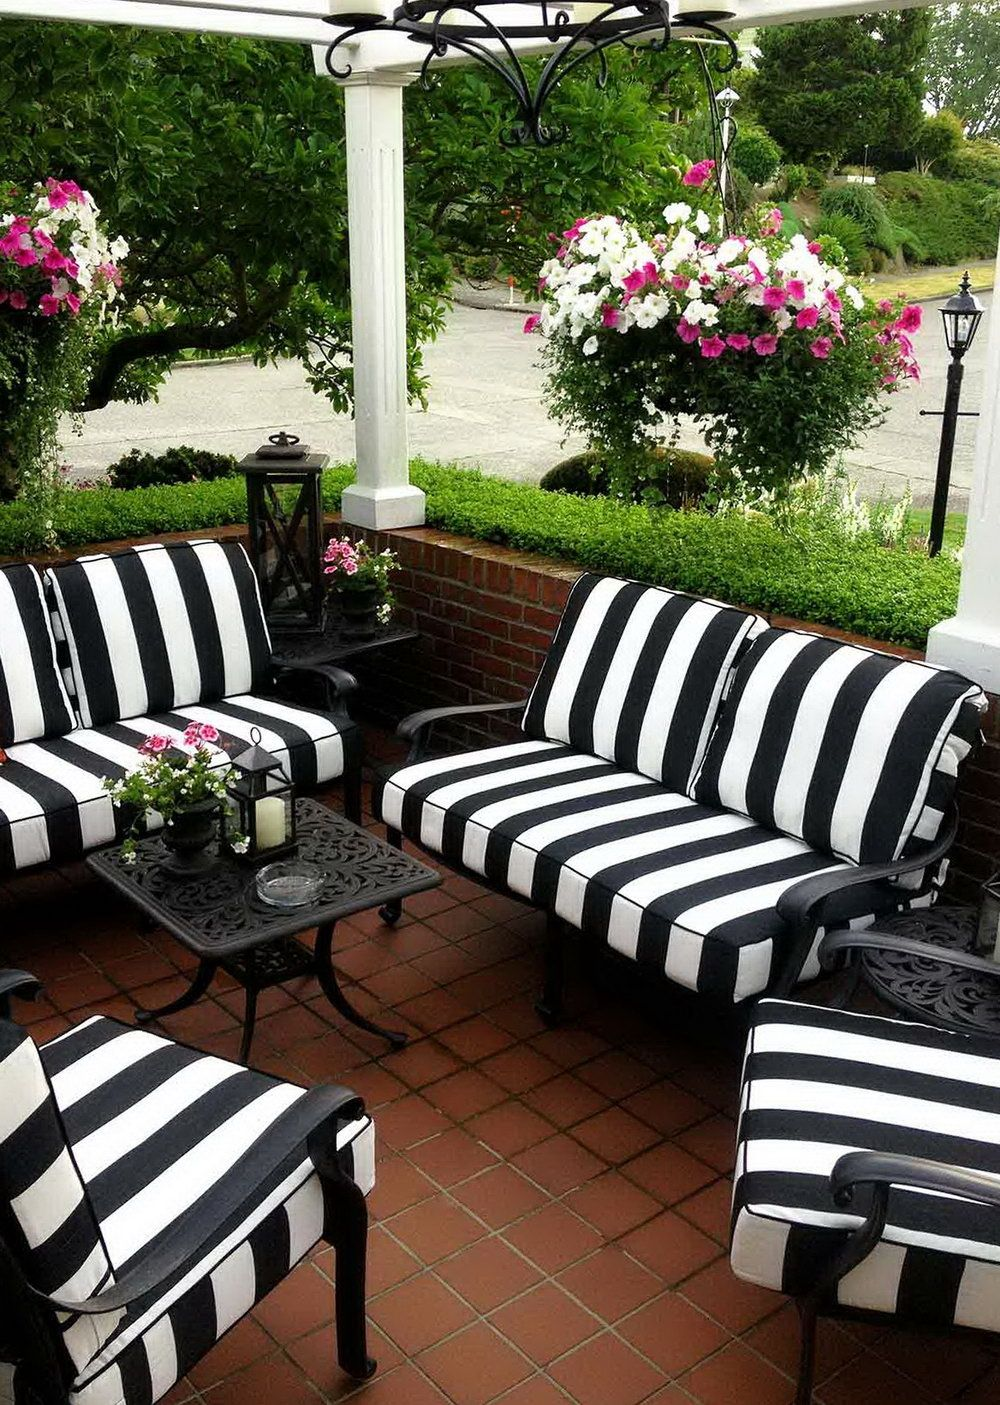 Black And White Striped Patio Cushions Black patio